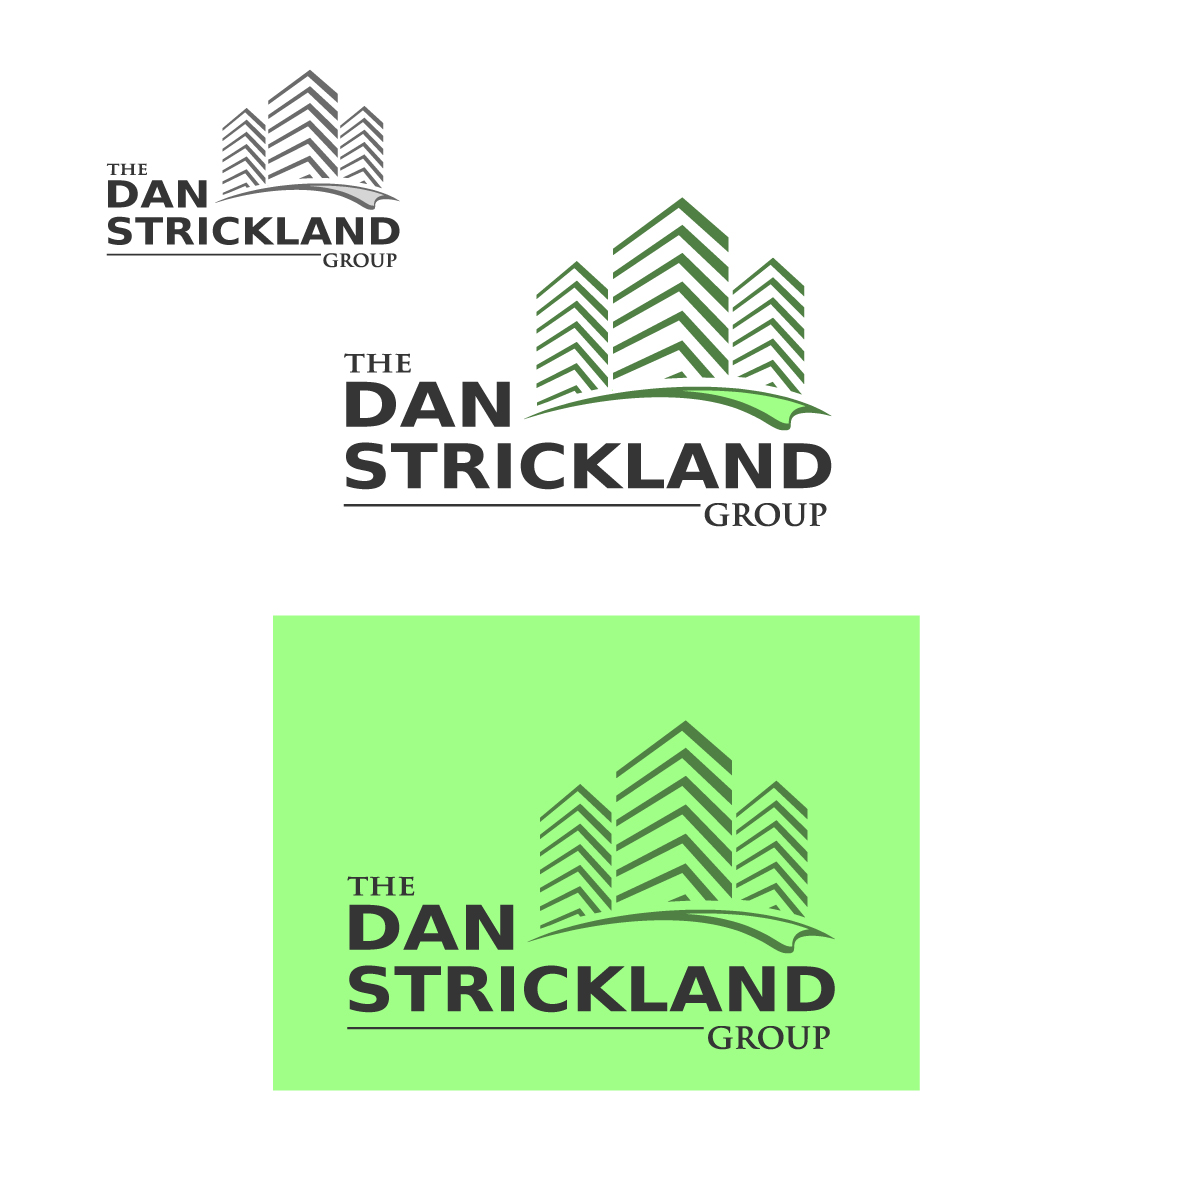 Logo Design by danelav - Entry No. 128 in the Logo Design Contest Creative Logo Design for The Dan Strickland Group.